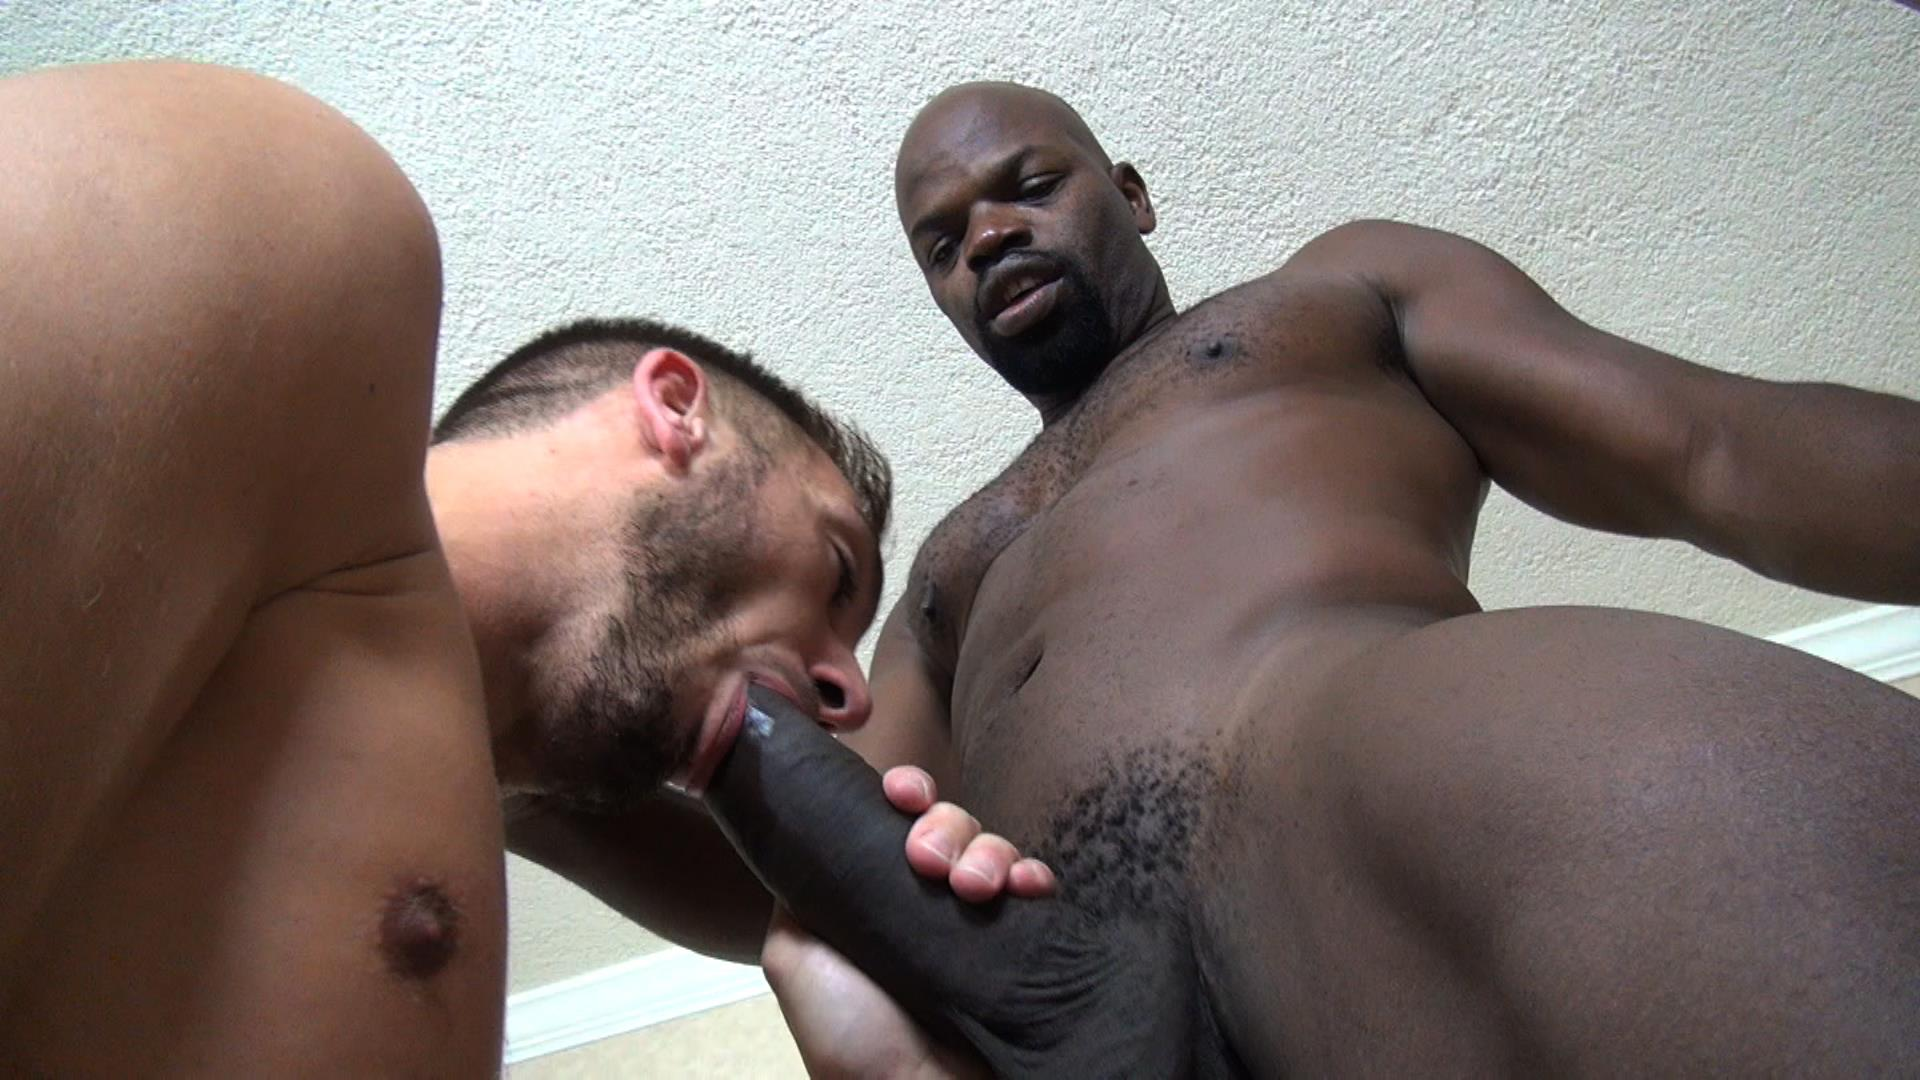 interracial boyfriends adam russo and cutler x barebacking